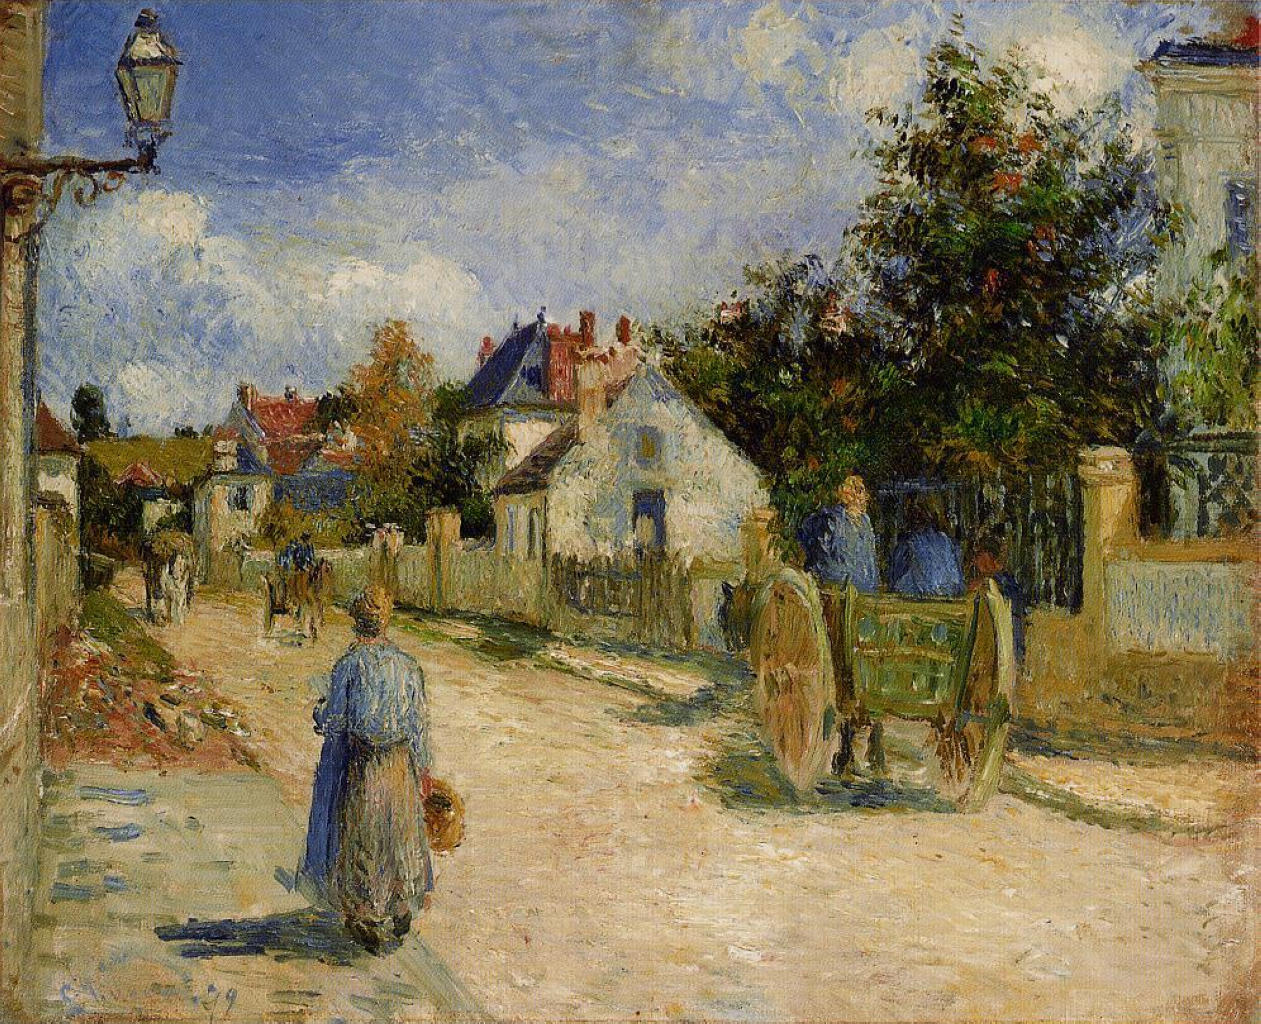 A Street in Pontoise by Camille Pissarro, 1879